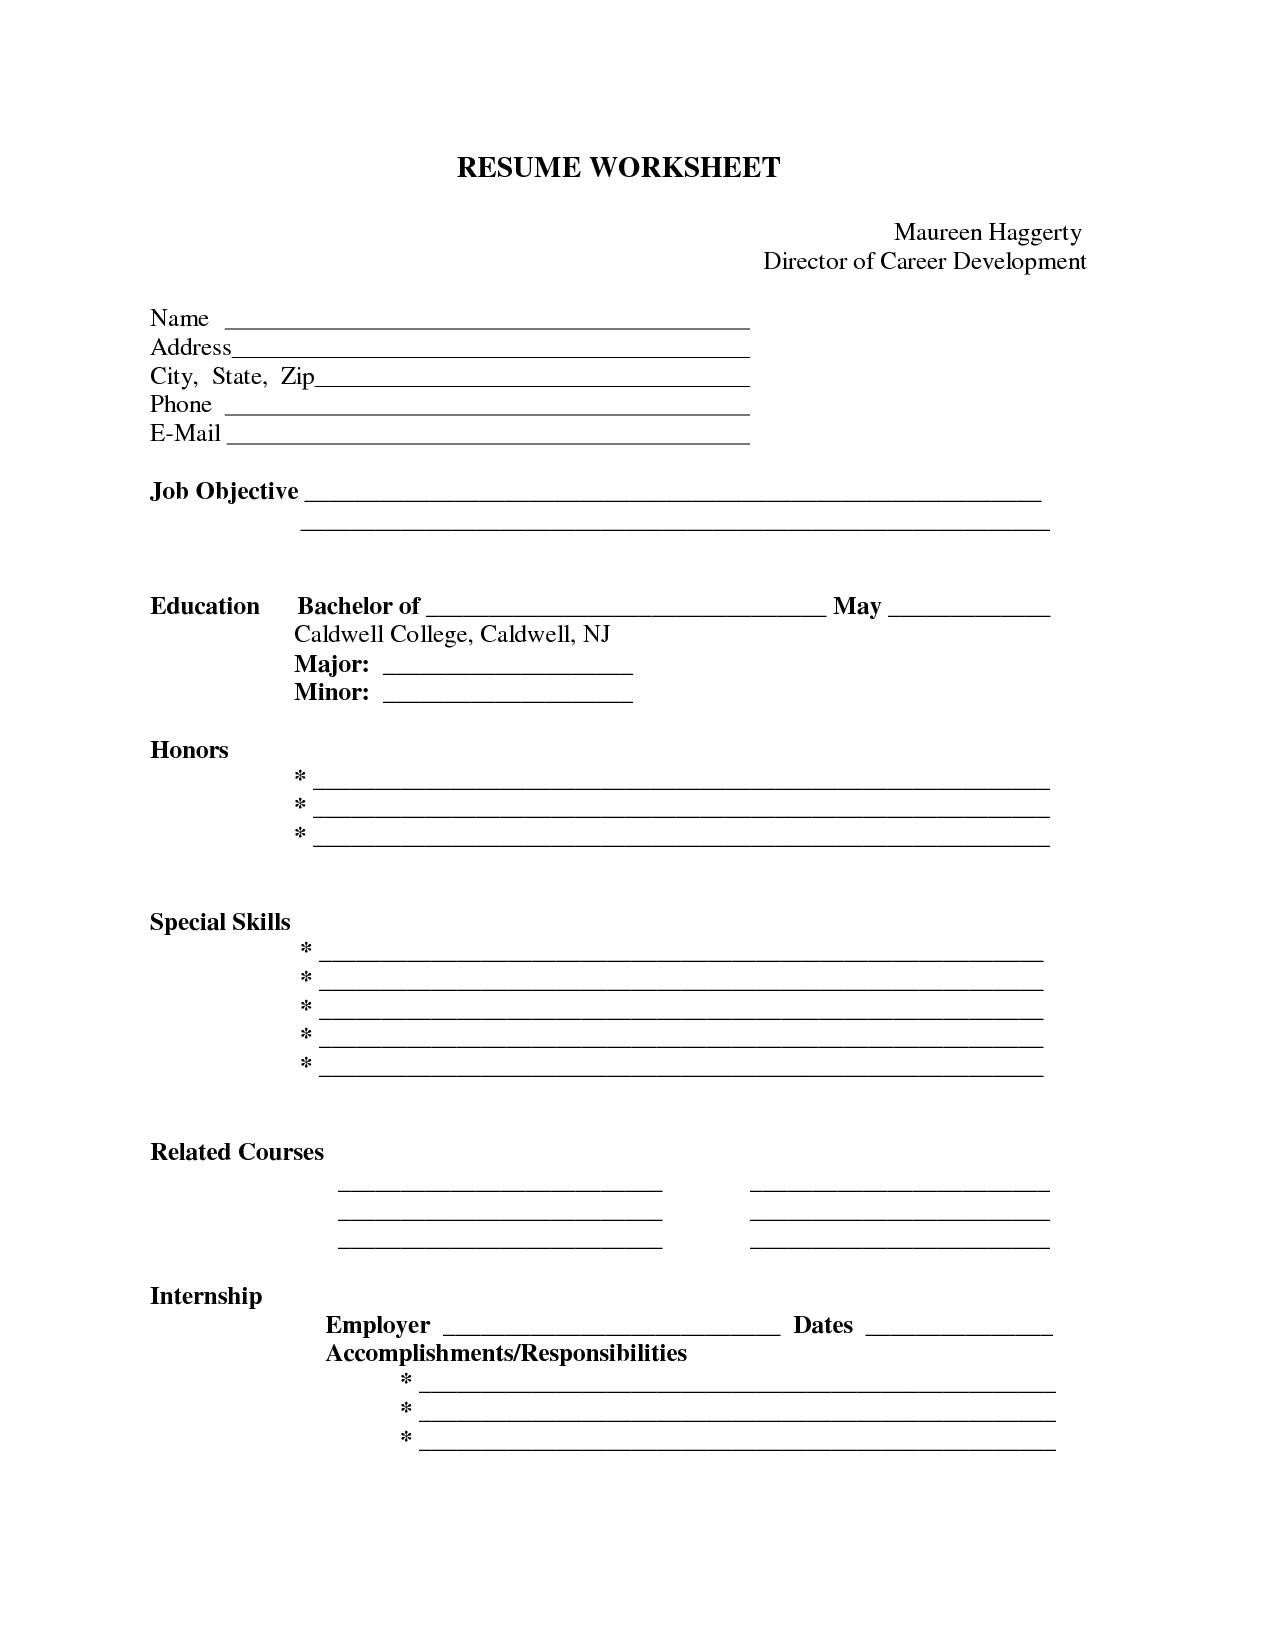 Printable Resumes - Kaza.psstech.co - Free Printable Resume